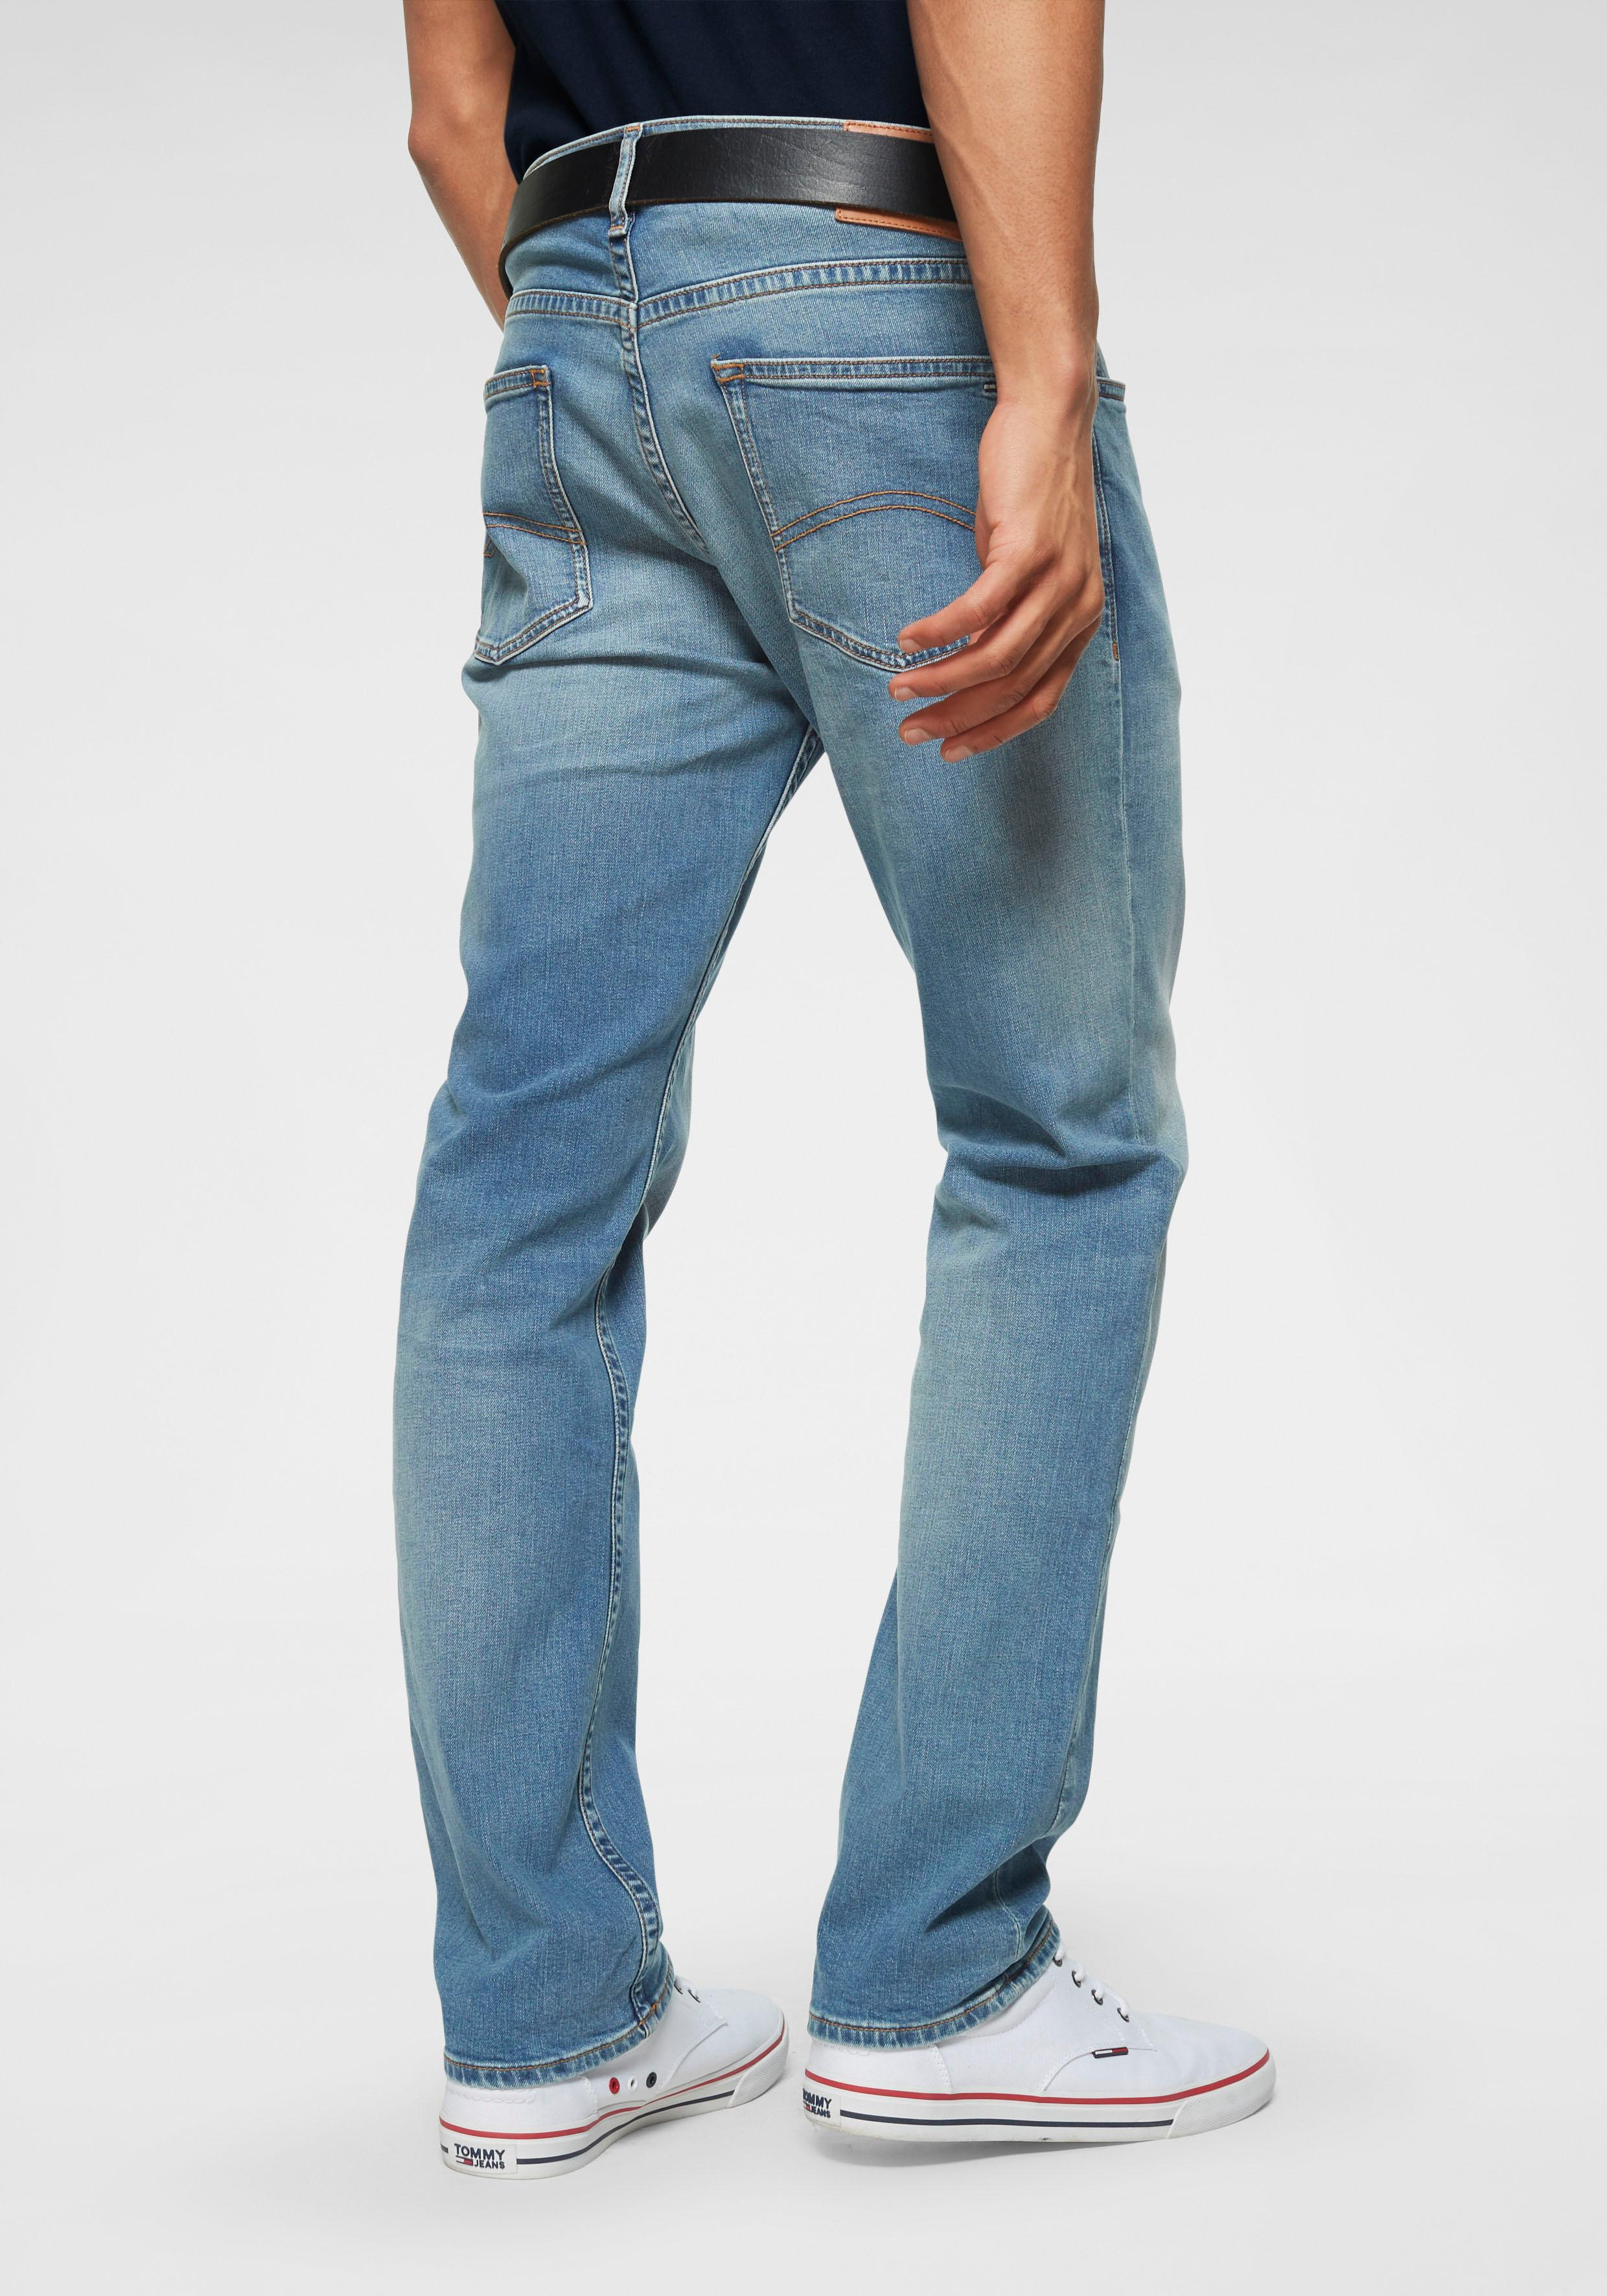 TOMMY JEANS Straight-Jeans ORIGINAL STRAIGHT RYAN RCKDB | Bekleidung > Jeans > Straight Leg Jeans | Blau | Jeans | Tommy Jeans